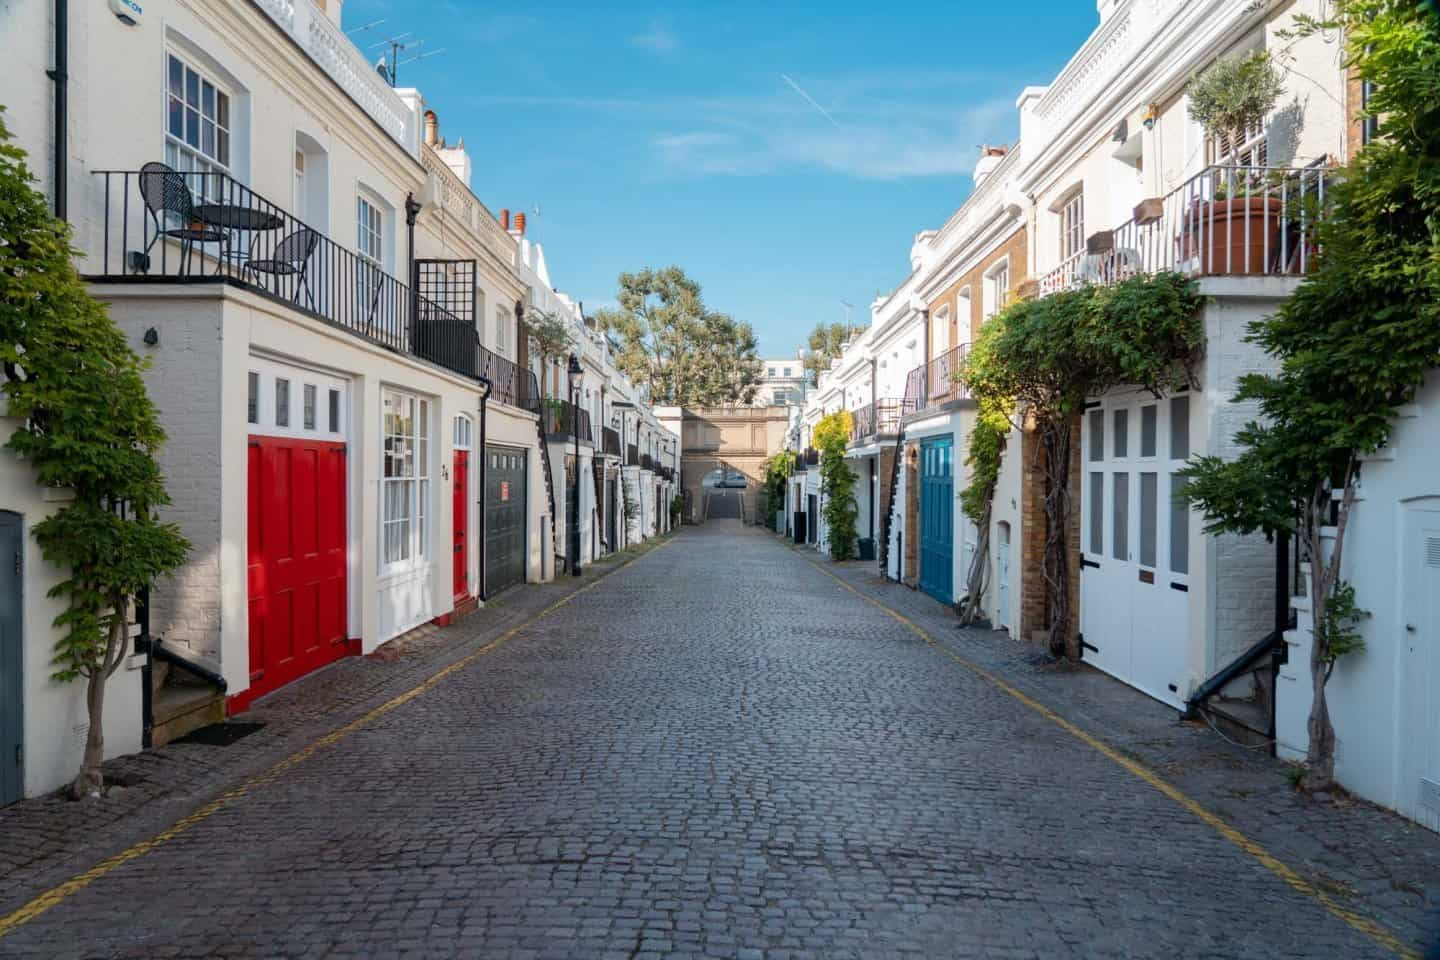 Holland Park Mews in Notting Hill, one of the most Instagrammable places in London